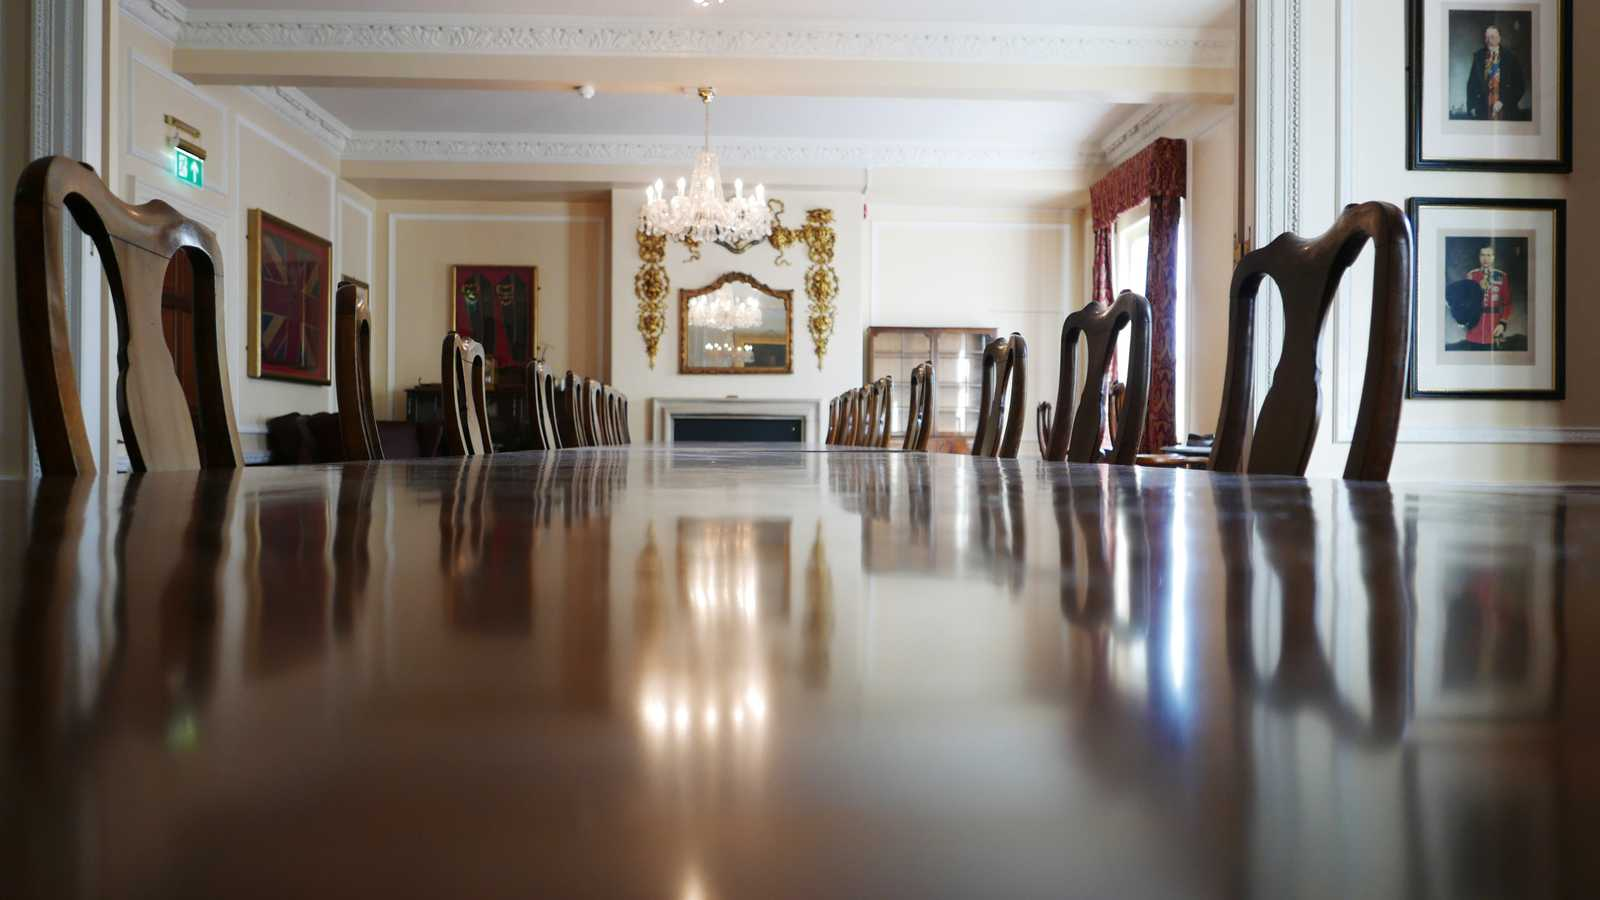 Dining Room with banquet table